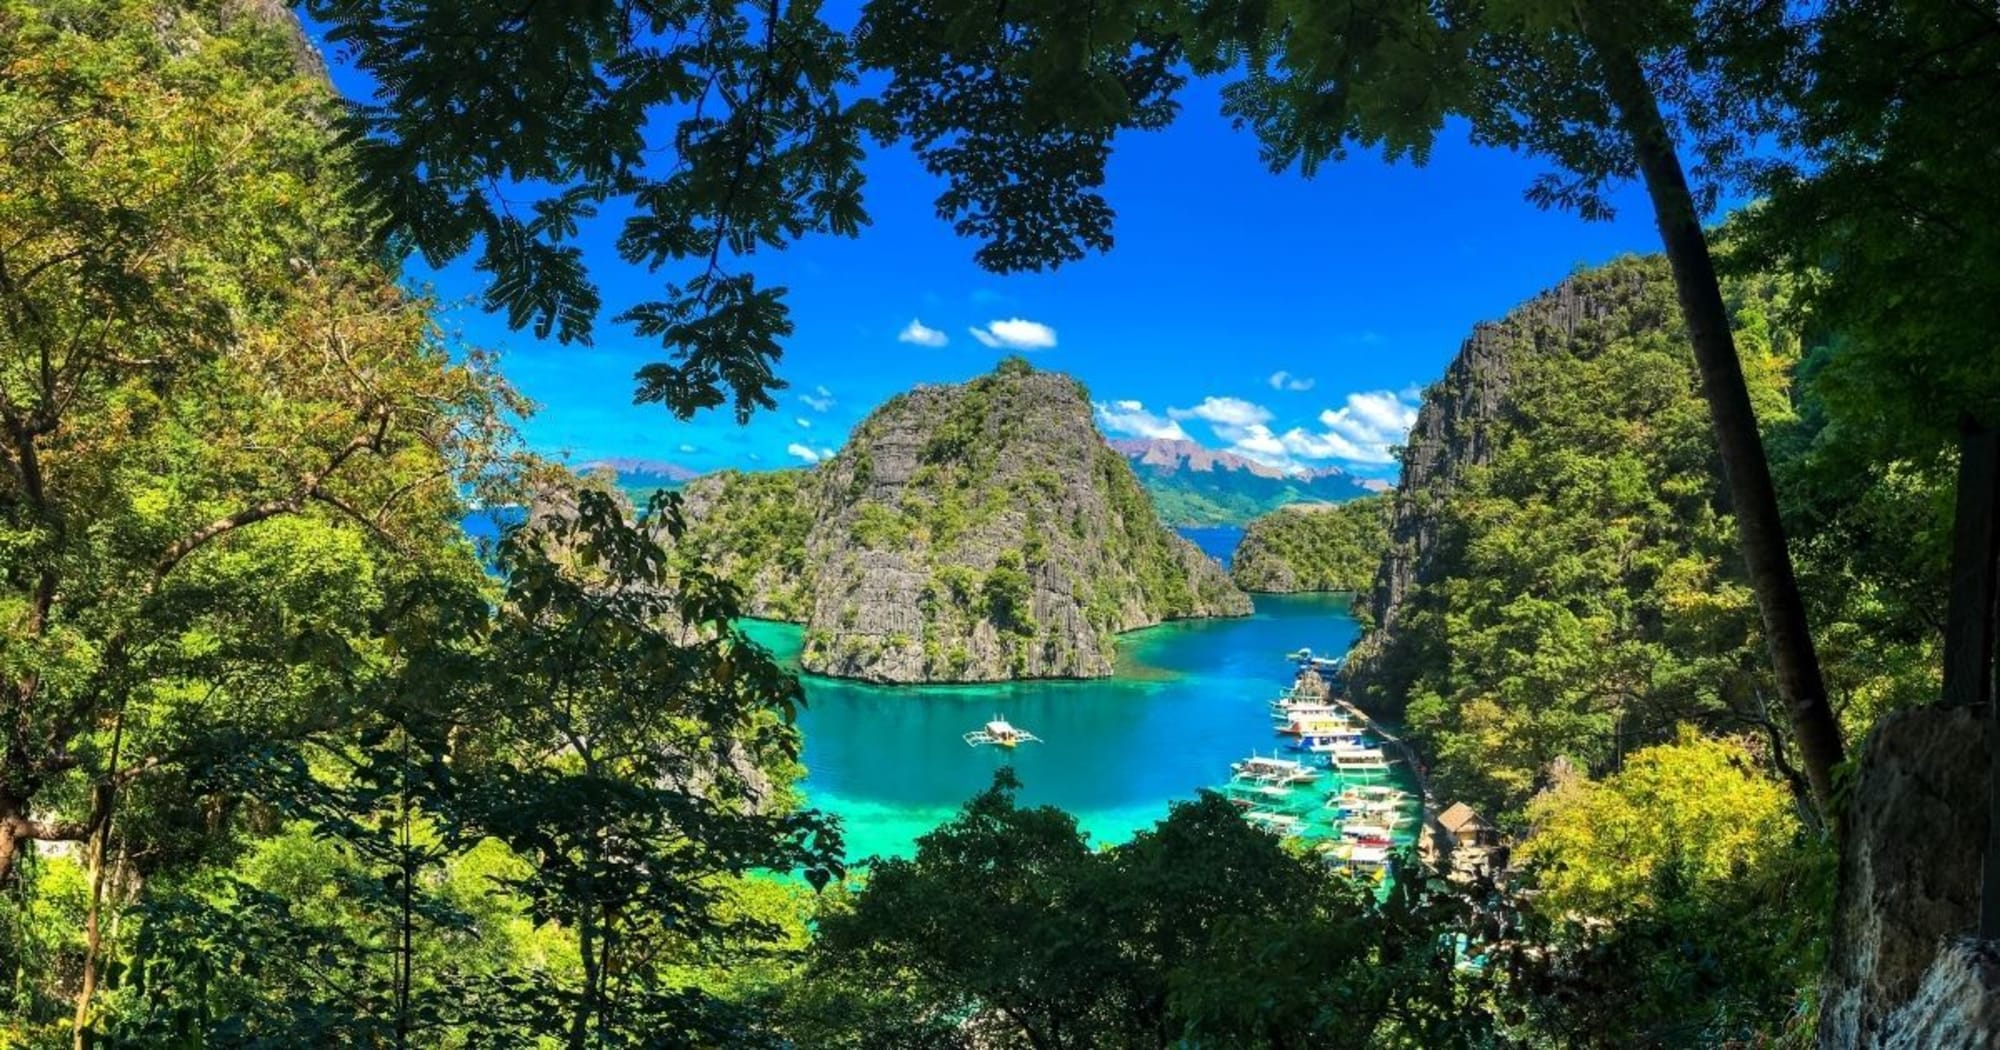 Coron tourist falsified travel documents, found to be positive for COVID-19